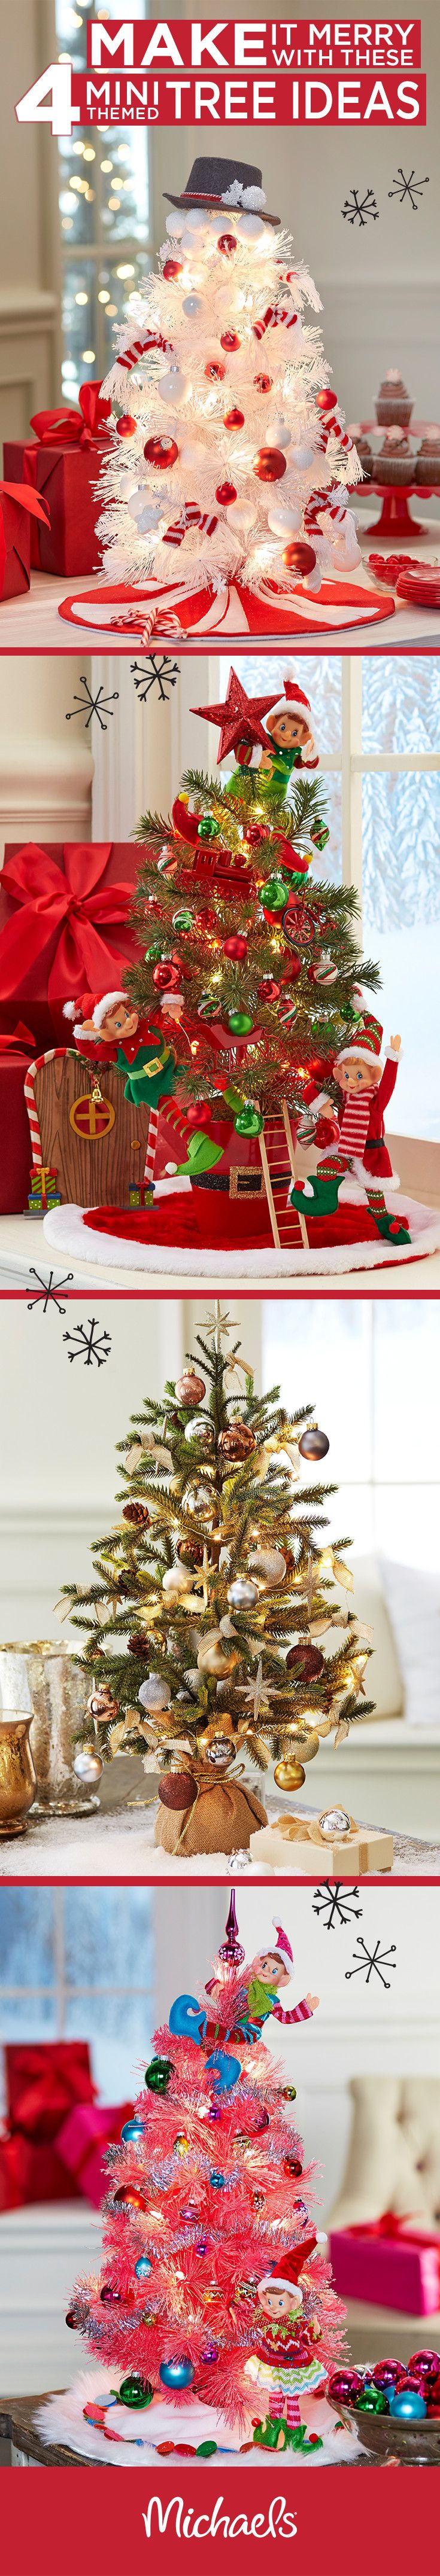 Mini trees are perfect for tabletops, entryways and even the kids room! Michaels has tiny trees and lots of miniature figures and tree adornments. Fore more inspiration visit Michaels.com